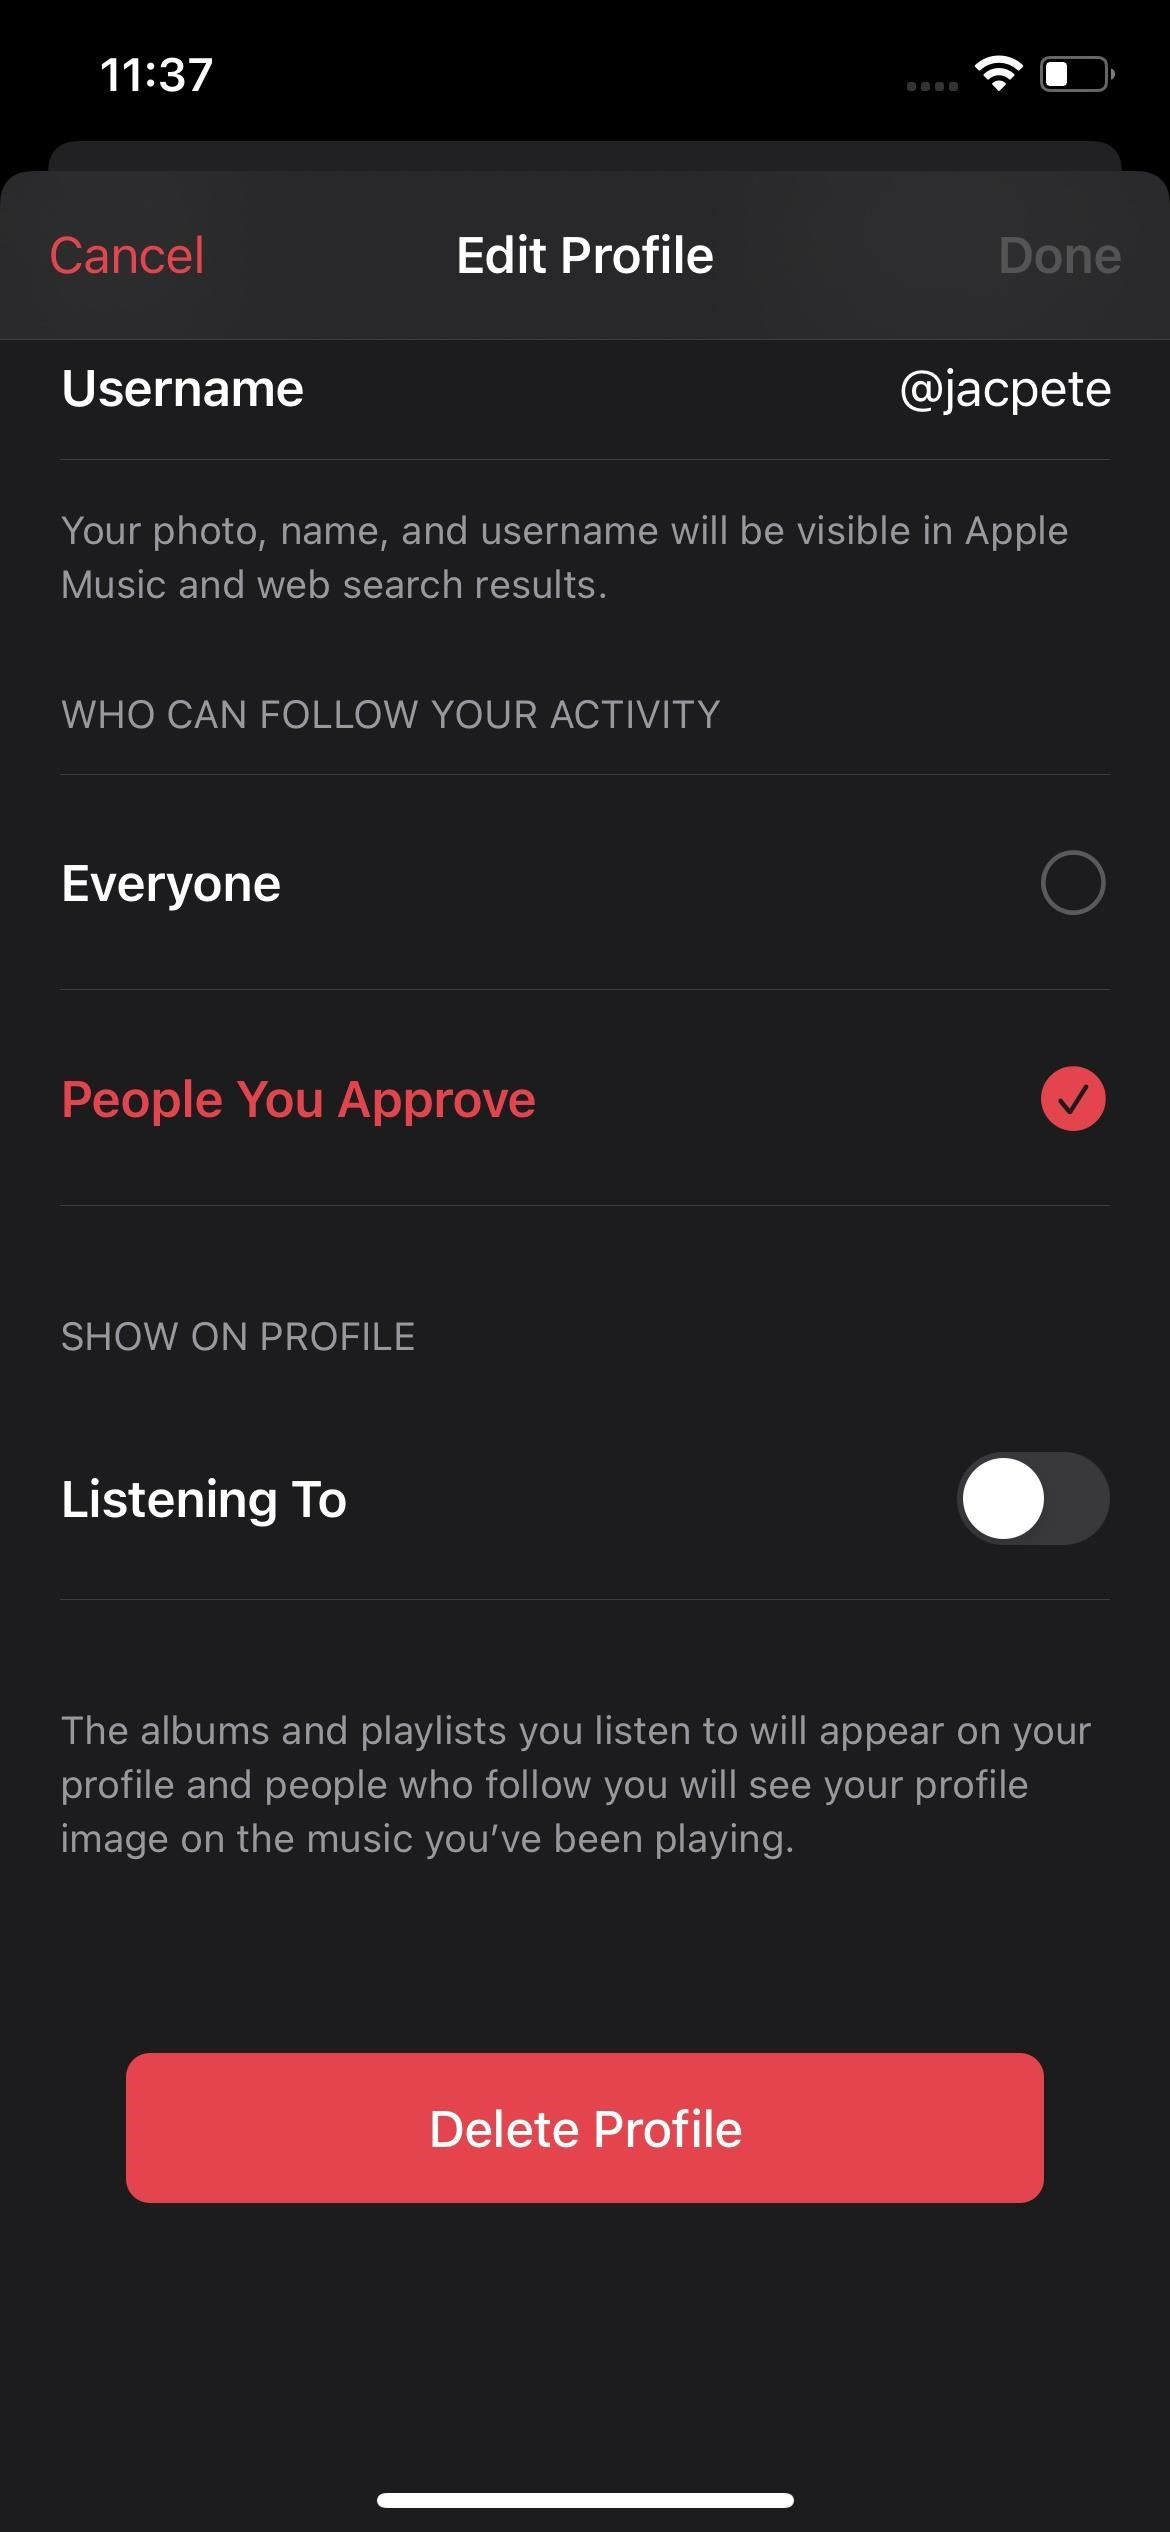 Check This Setting if You Don't Want Your Friends to See What You're Listening to on Apple Music